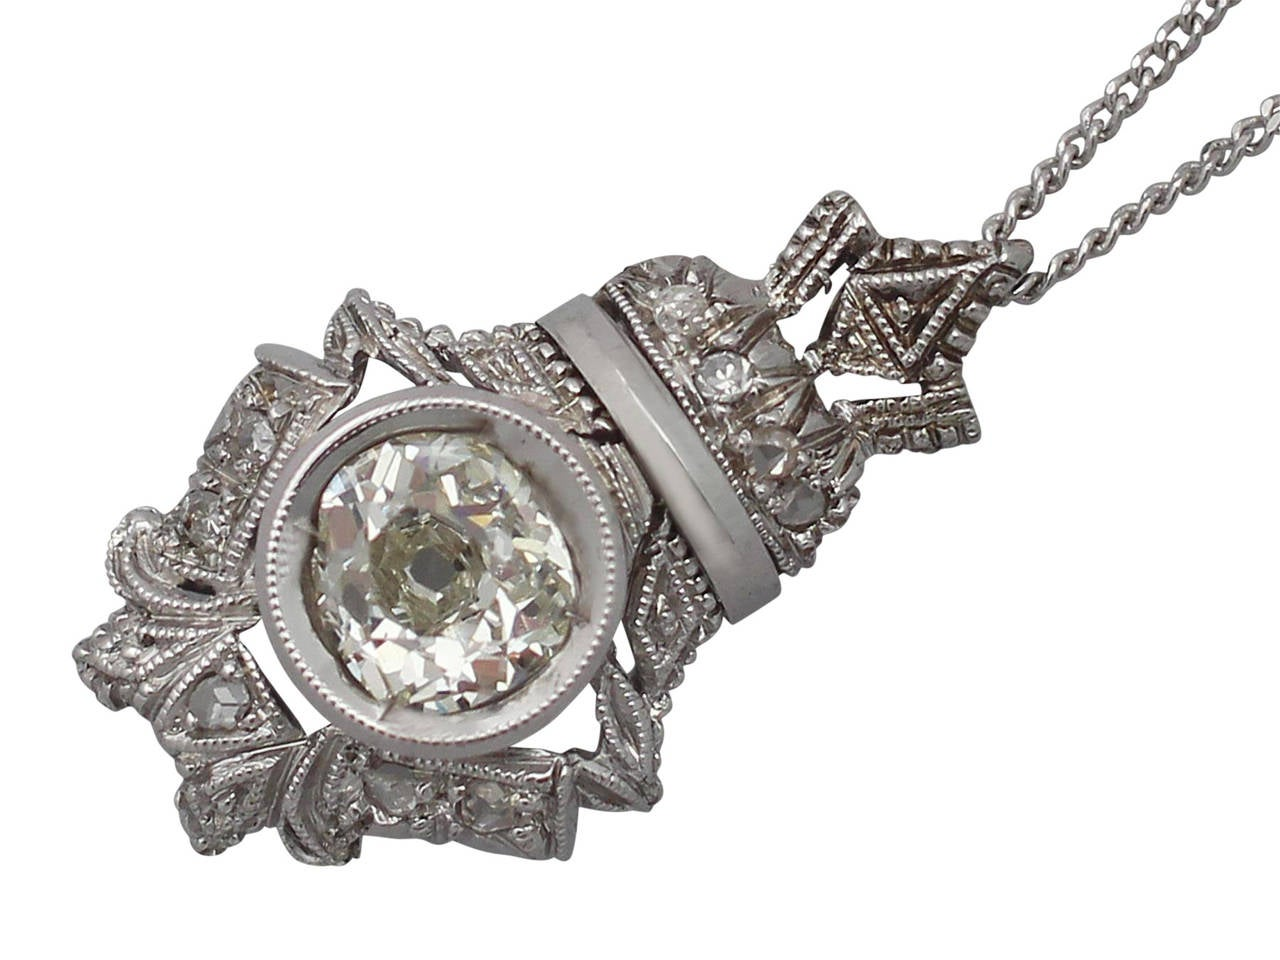 0.84 Carat Diamond and 18 Karat White Gold Pendant, Antique, circa 1900 In Excellent Condition For Sale In Jesmond, Newcastle Upon Tyne